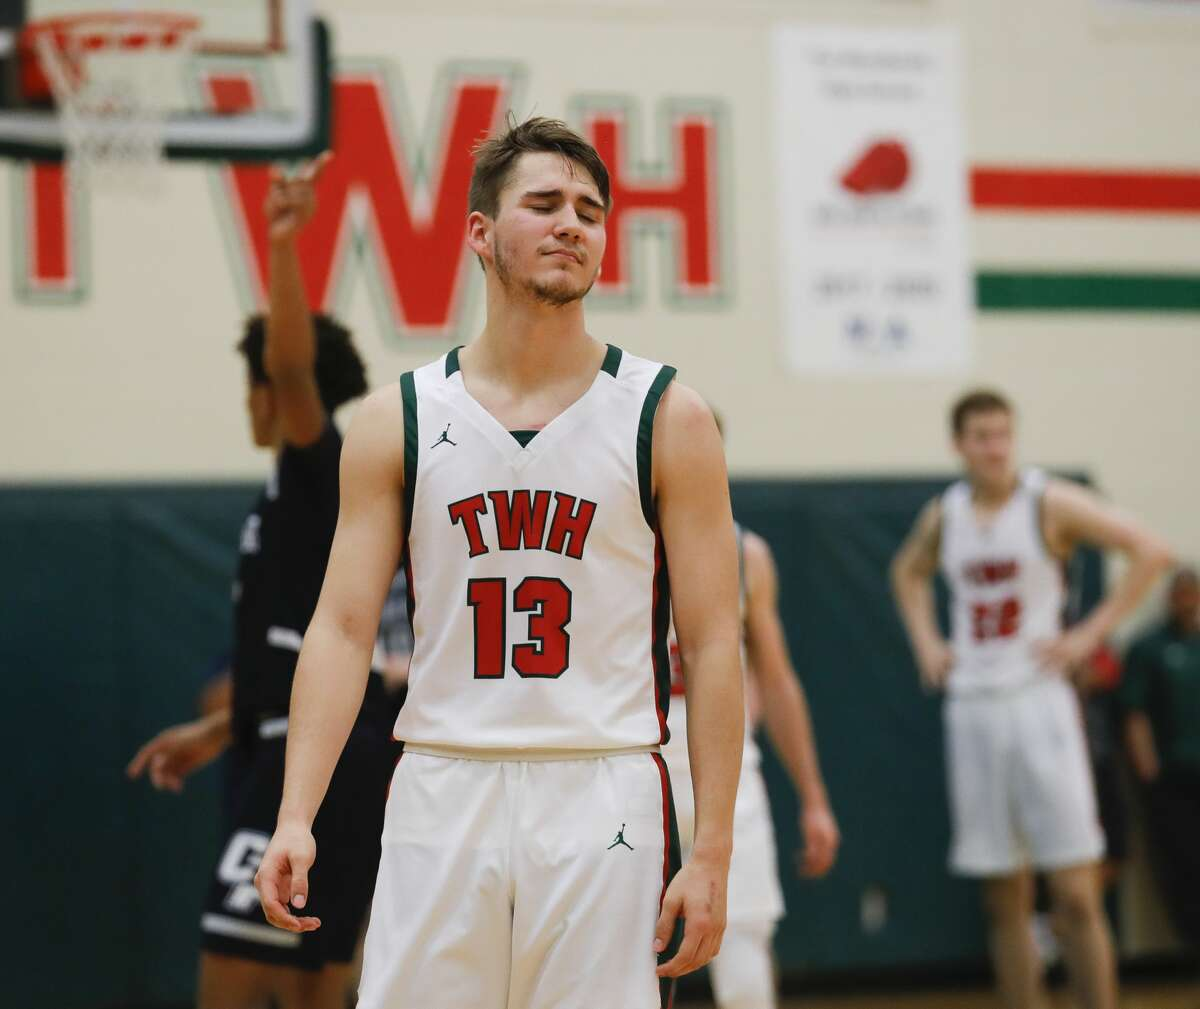 The Woodlands guard Tyler Hveem (13) reacts after a turnover in the closing seconds of the team's 48-46 loss to College Park during a District 15-6A high school basketball game at The Woodlands High School, Friday, Jan. 17, 2020, in The Woodlands.